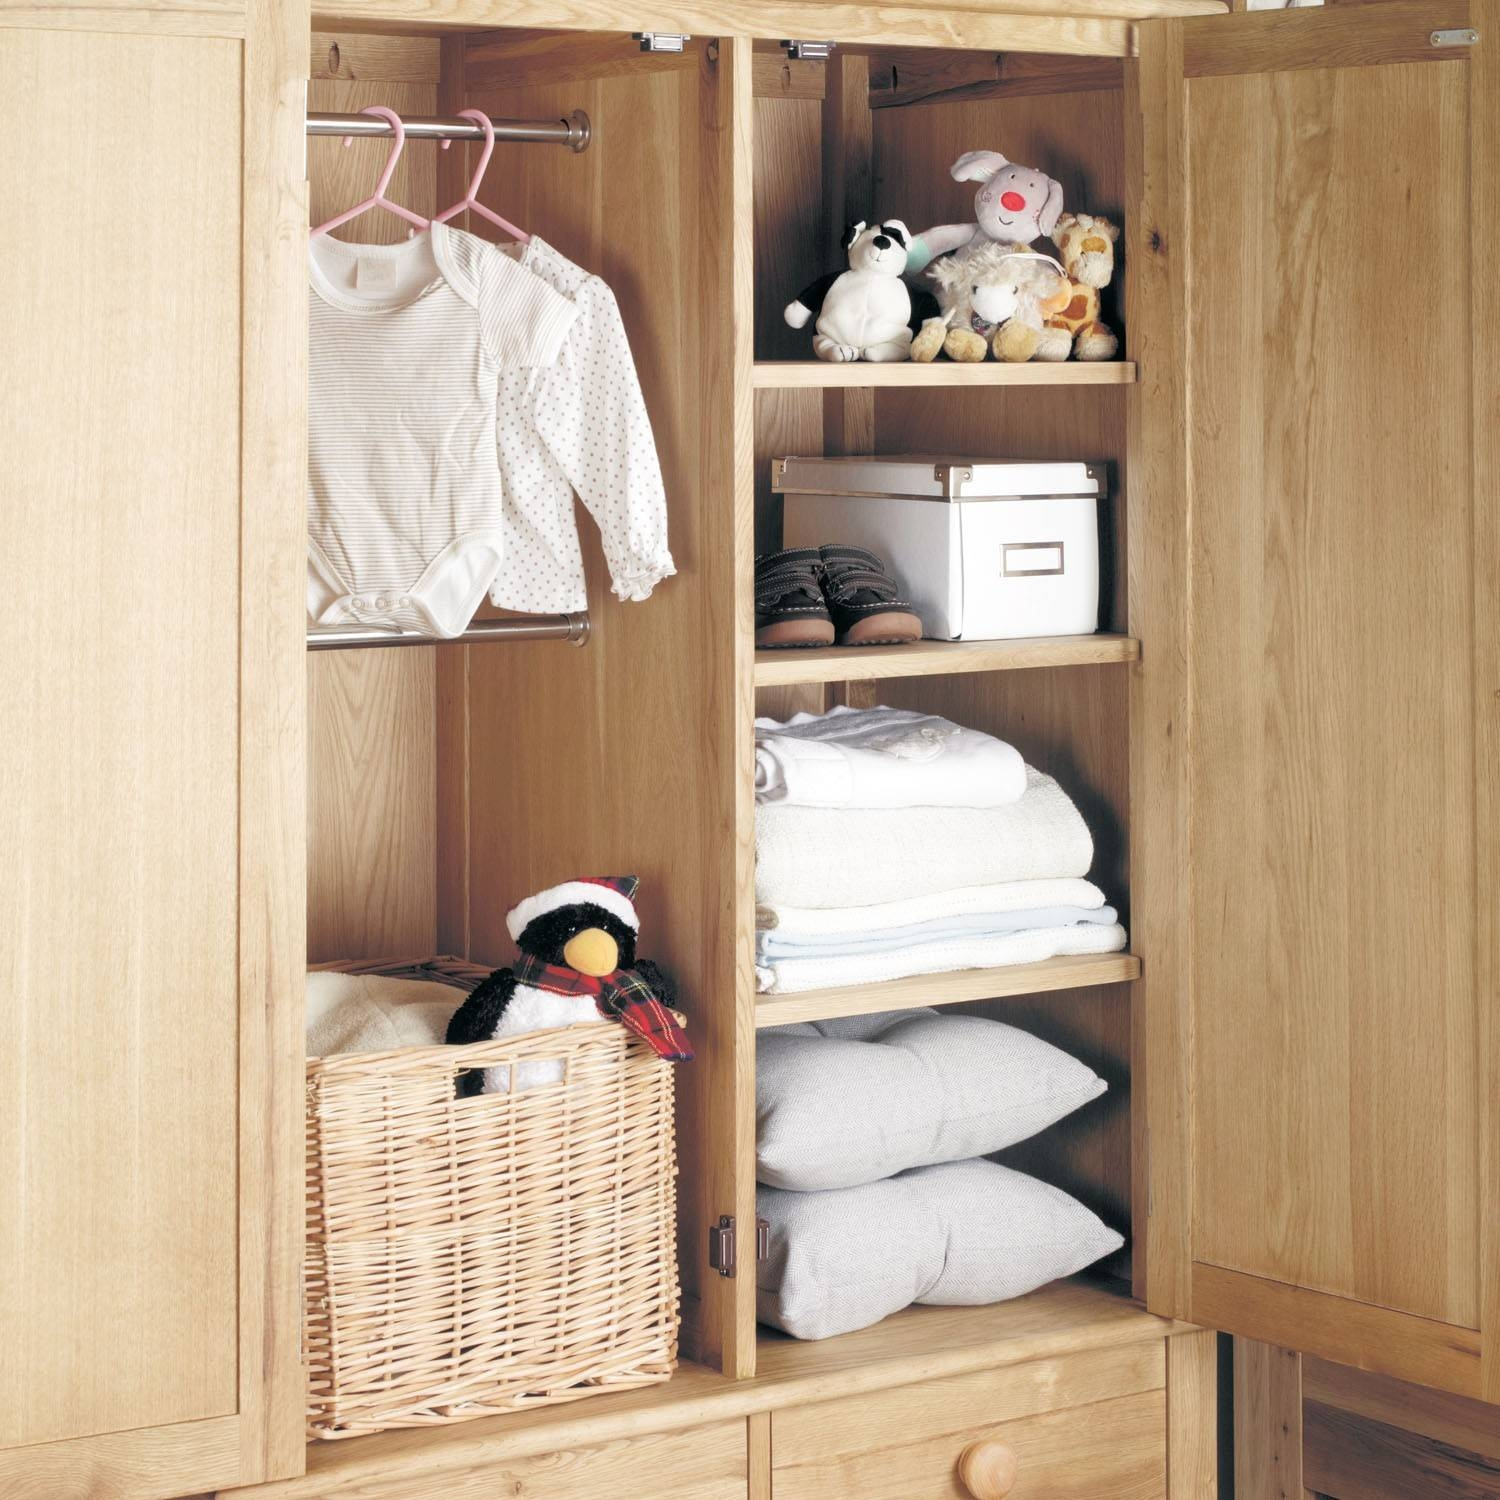 Amelie Oak Childrens Double Wardrobe - Amelie Oak Children's intended for Double Rail Wardrobe With Drawers (Image 4 of 30)